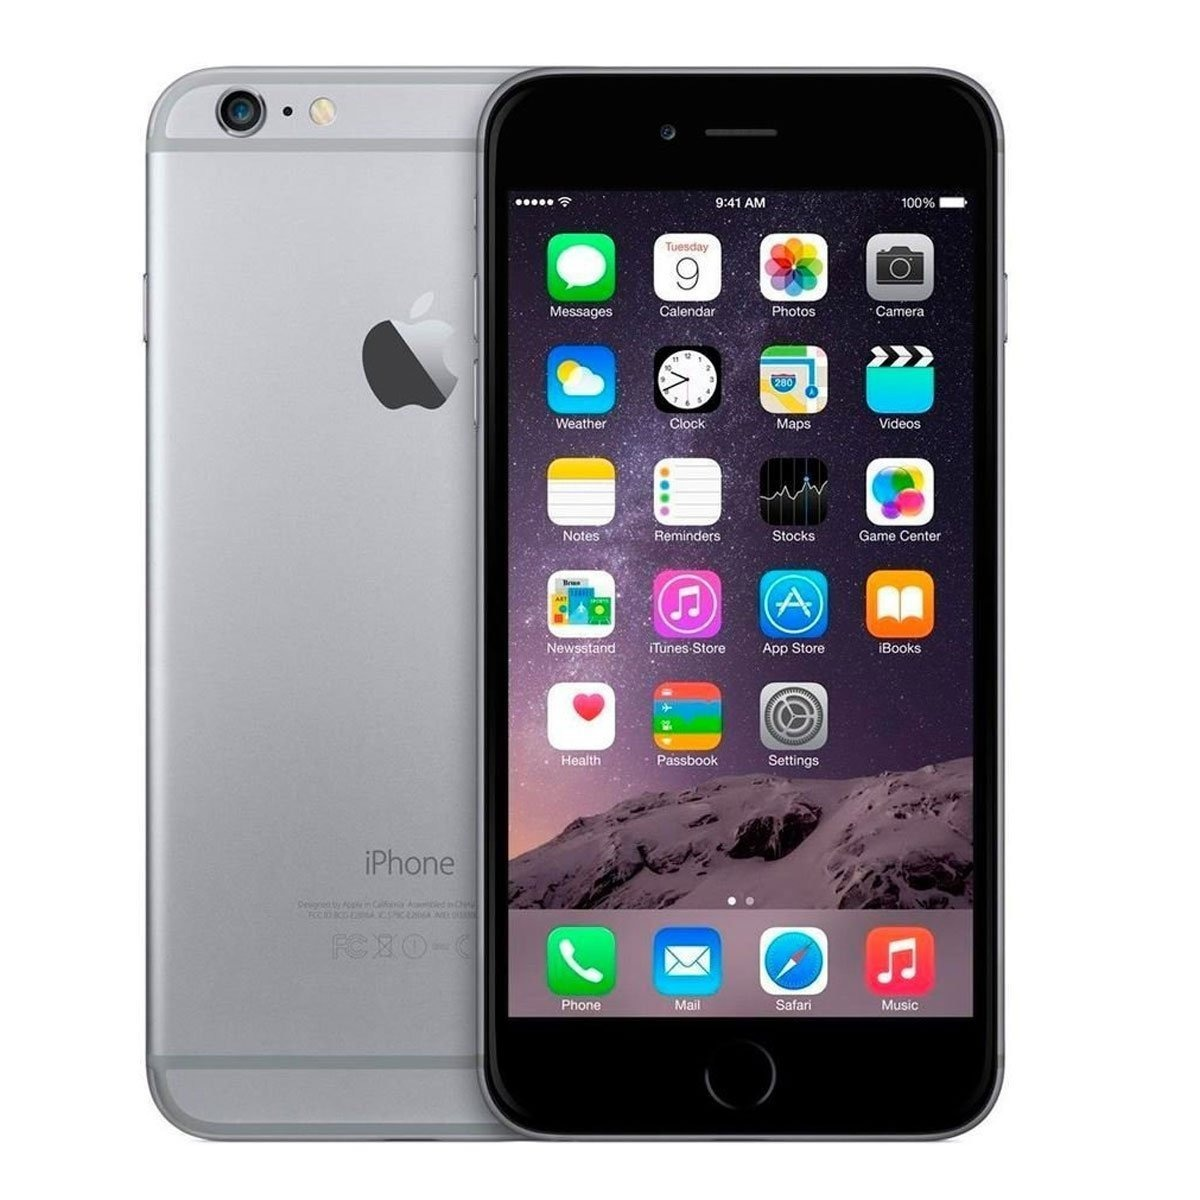 Iphone 6 Libre Precio Celular Apple Iphone 6 16gb 4g Lte Demo